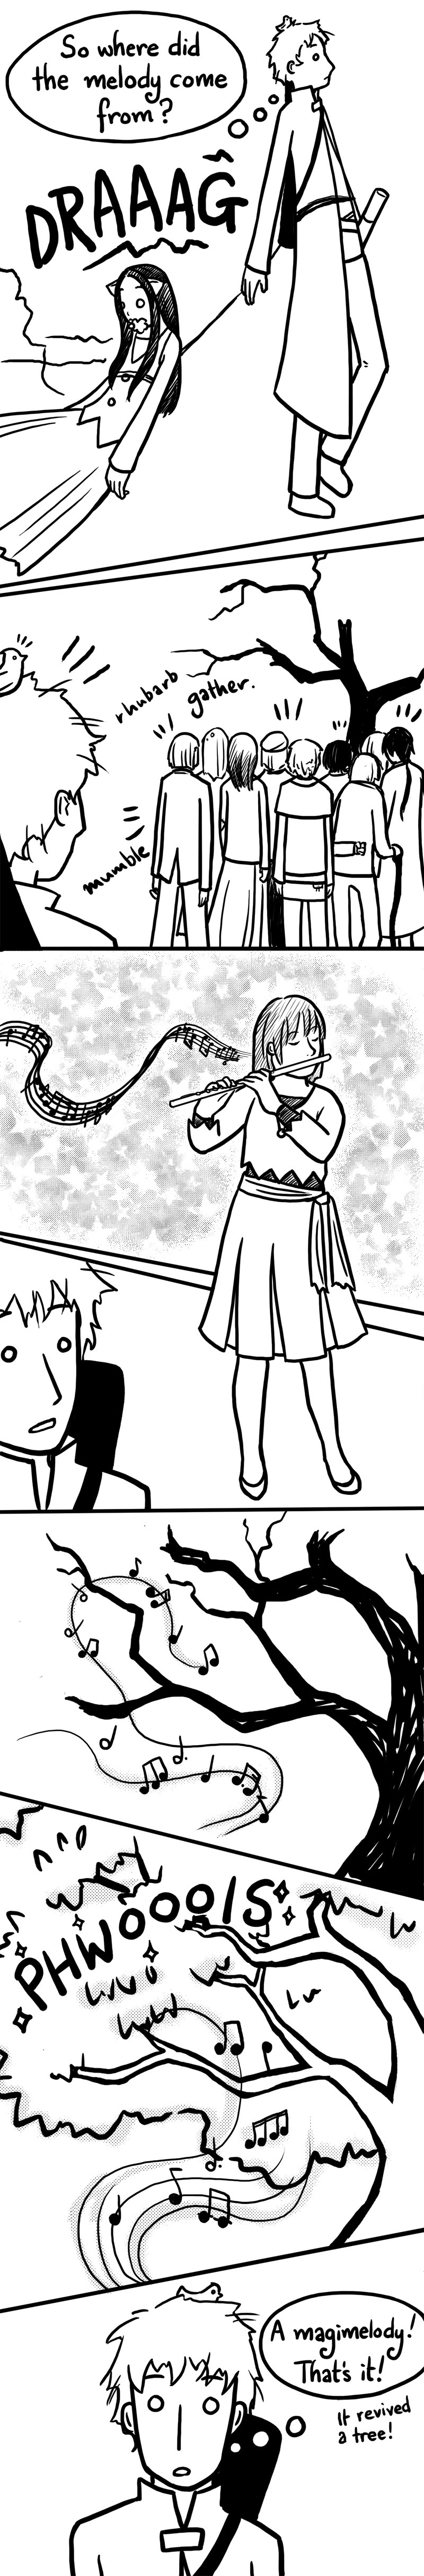 comic-2012-01-26-The-Flautist.jpg